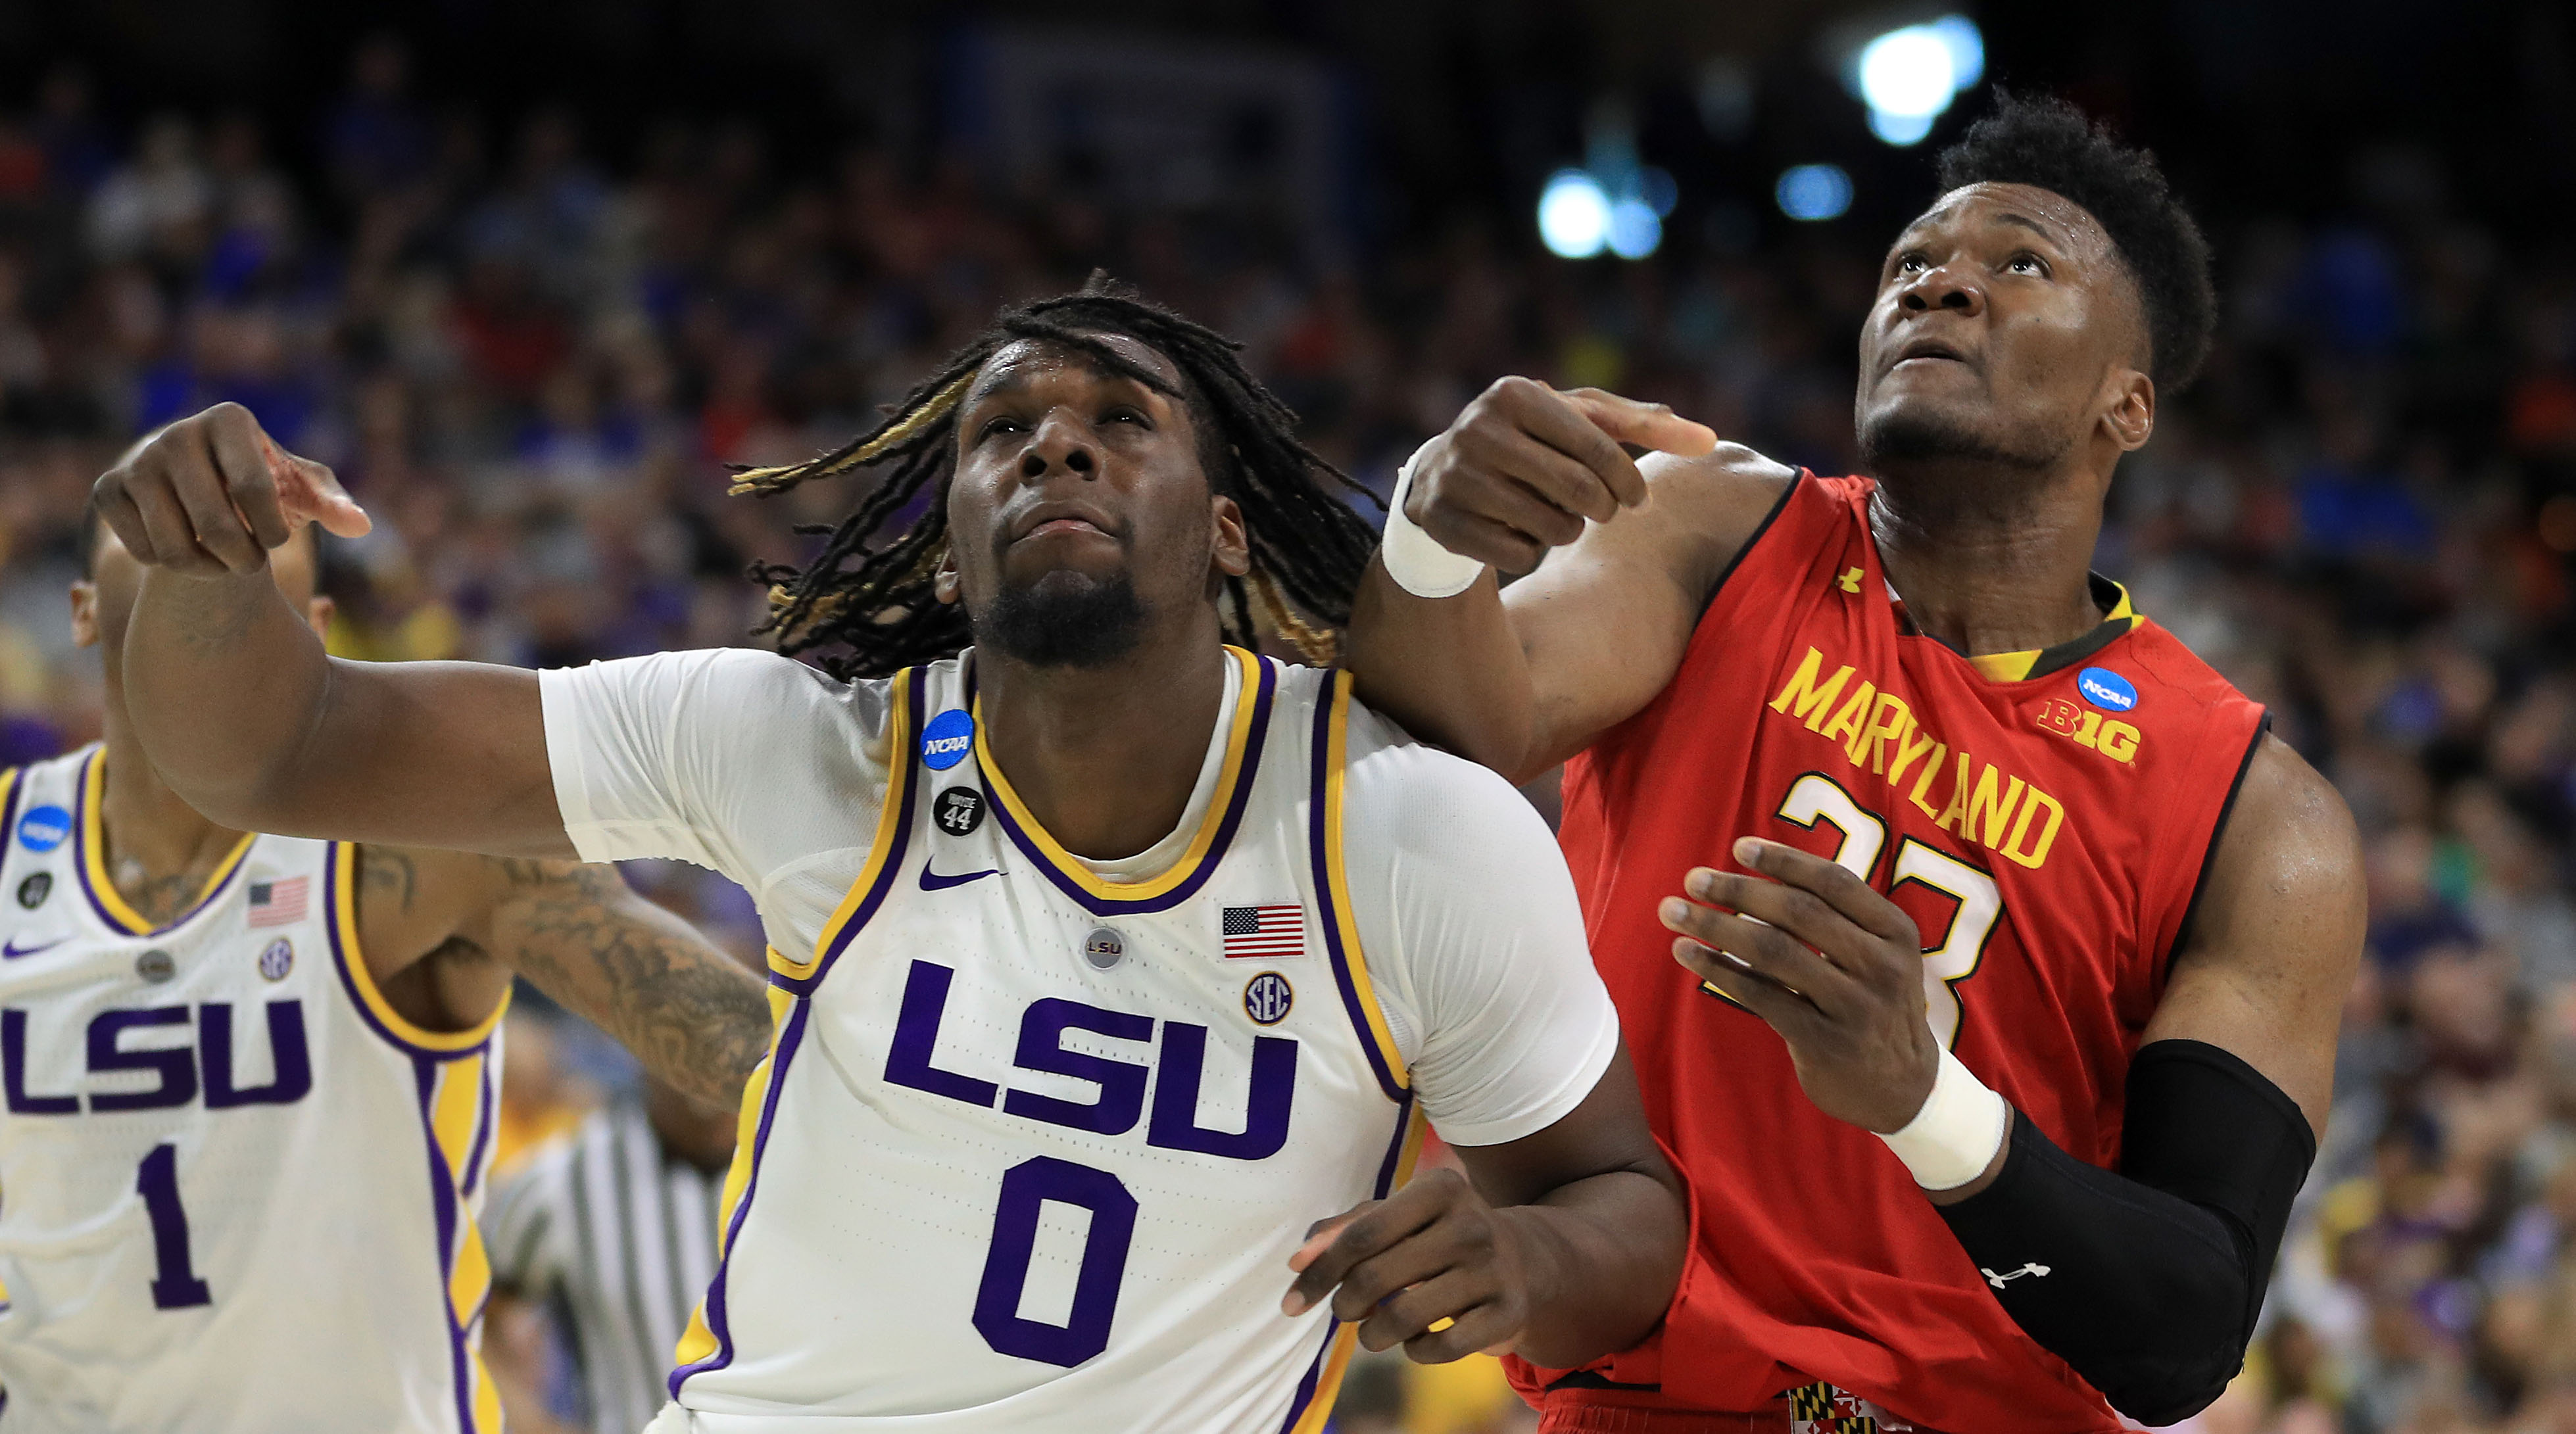 LSU beats Maryland in NCAA tournament second round